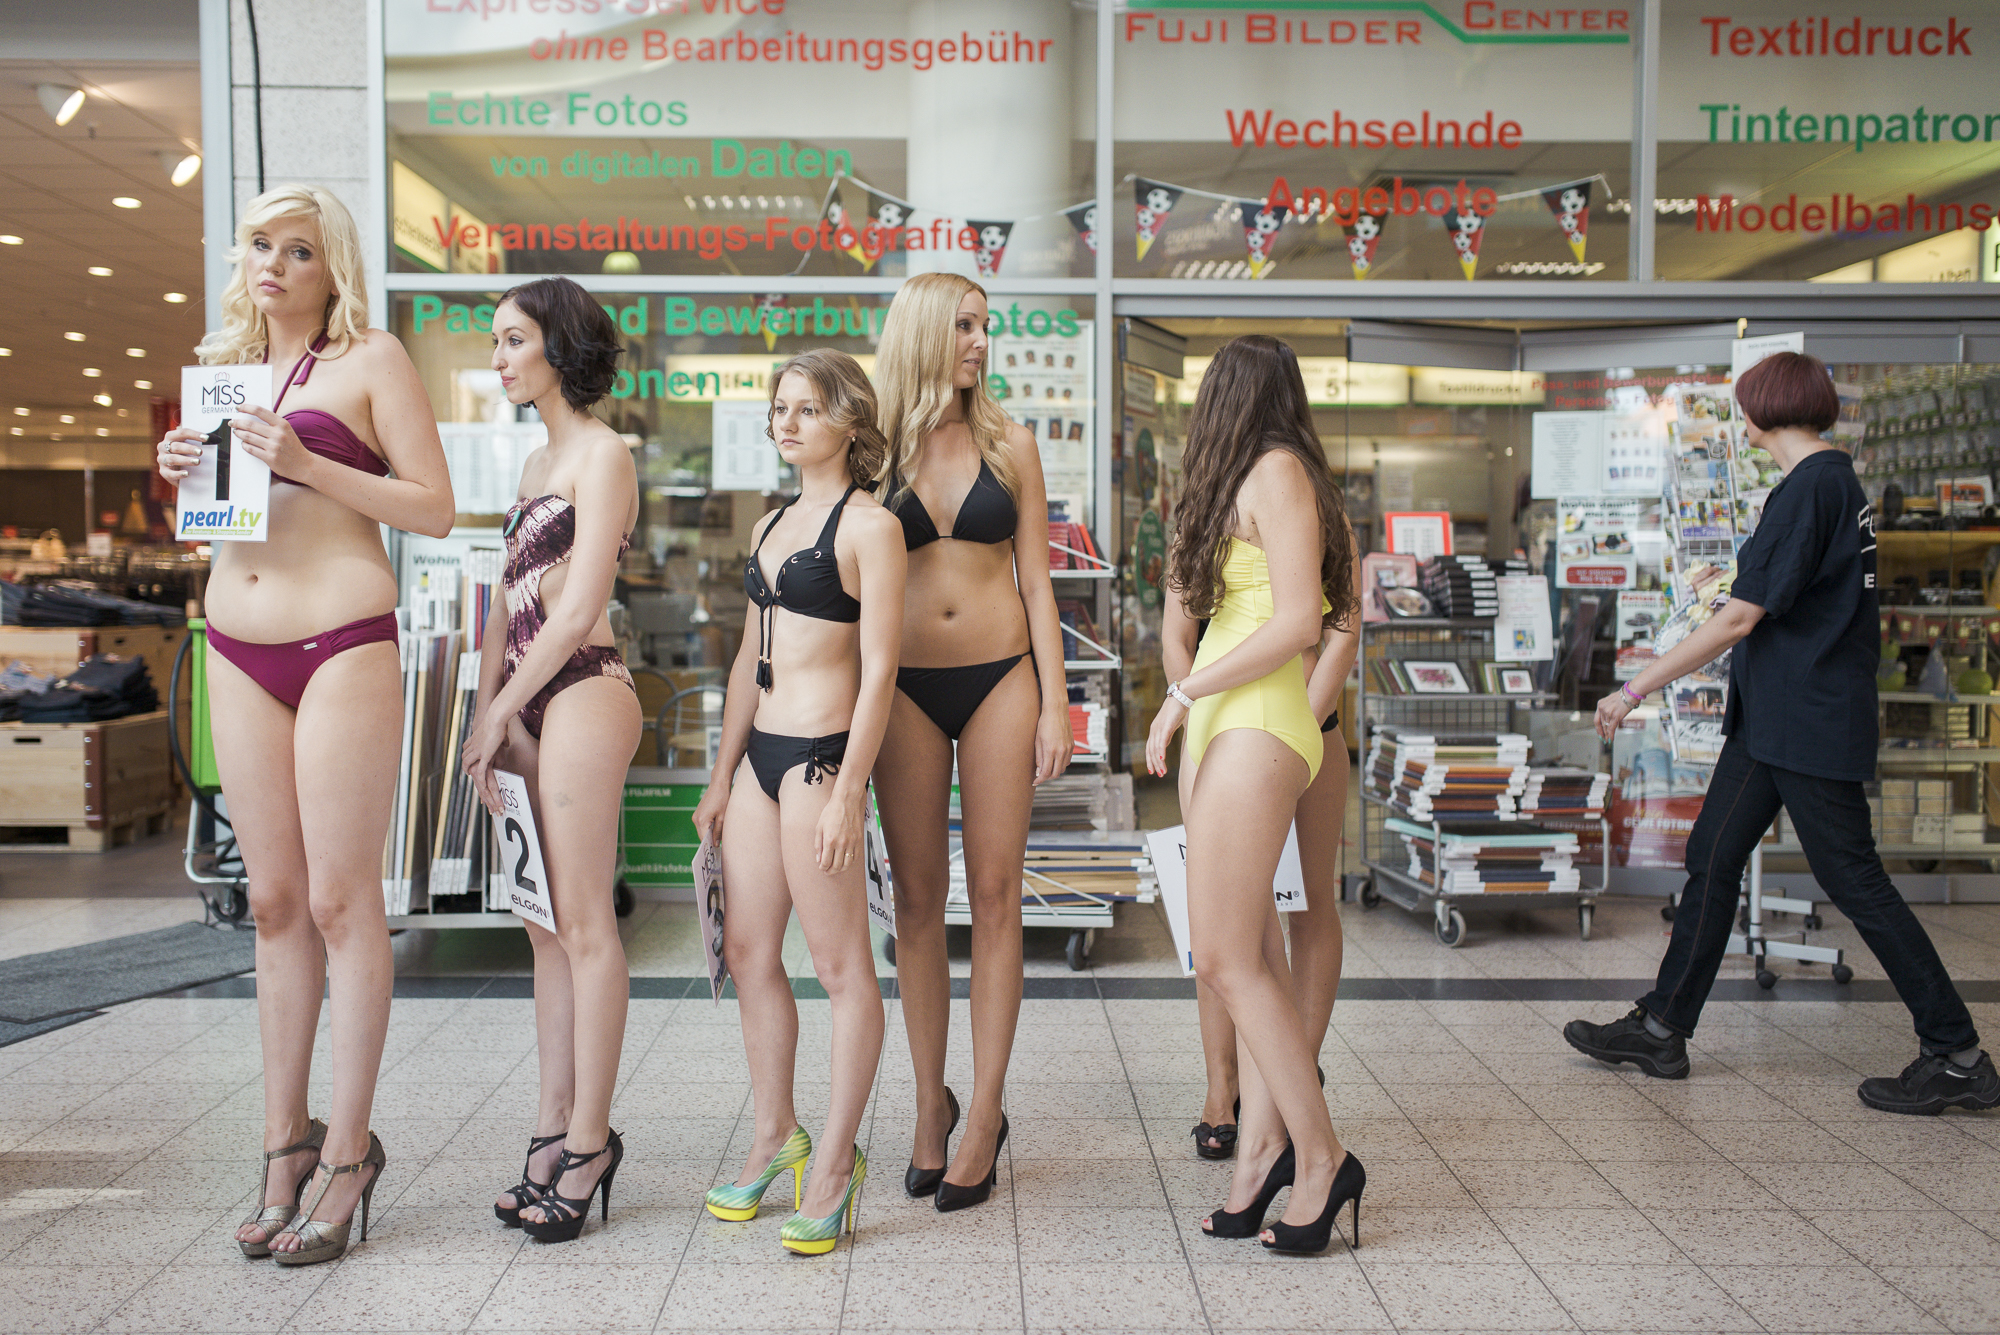 Miss Germany : Wolfenbüttel, Lower Saxony, Germany. At the judging in a shopping mall in Wolfenbüttel of the Miss Braunschweig to be. The models Jasmin, Marie-Therese, Katharina, Nadine, Miles and Christine (f.l.t.r.) are competing for this years title, who is then competing for Miss Germany. Casting shows and model competitions are extremely popular among young German girls, hoping to be discovered.